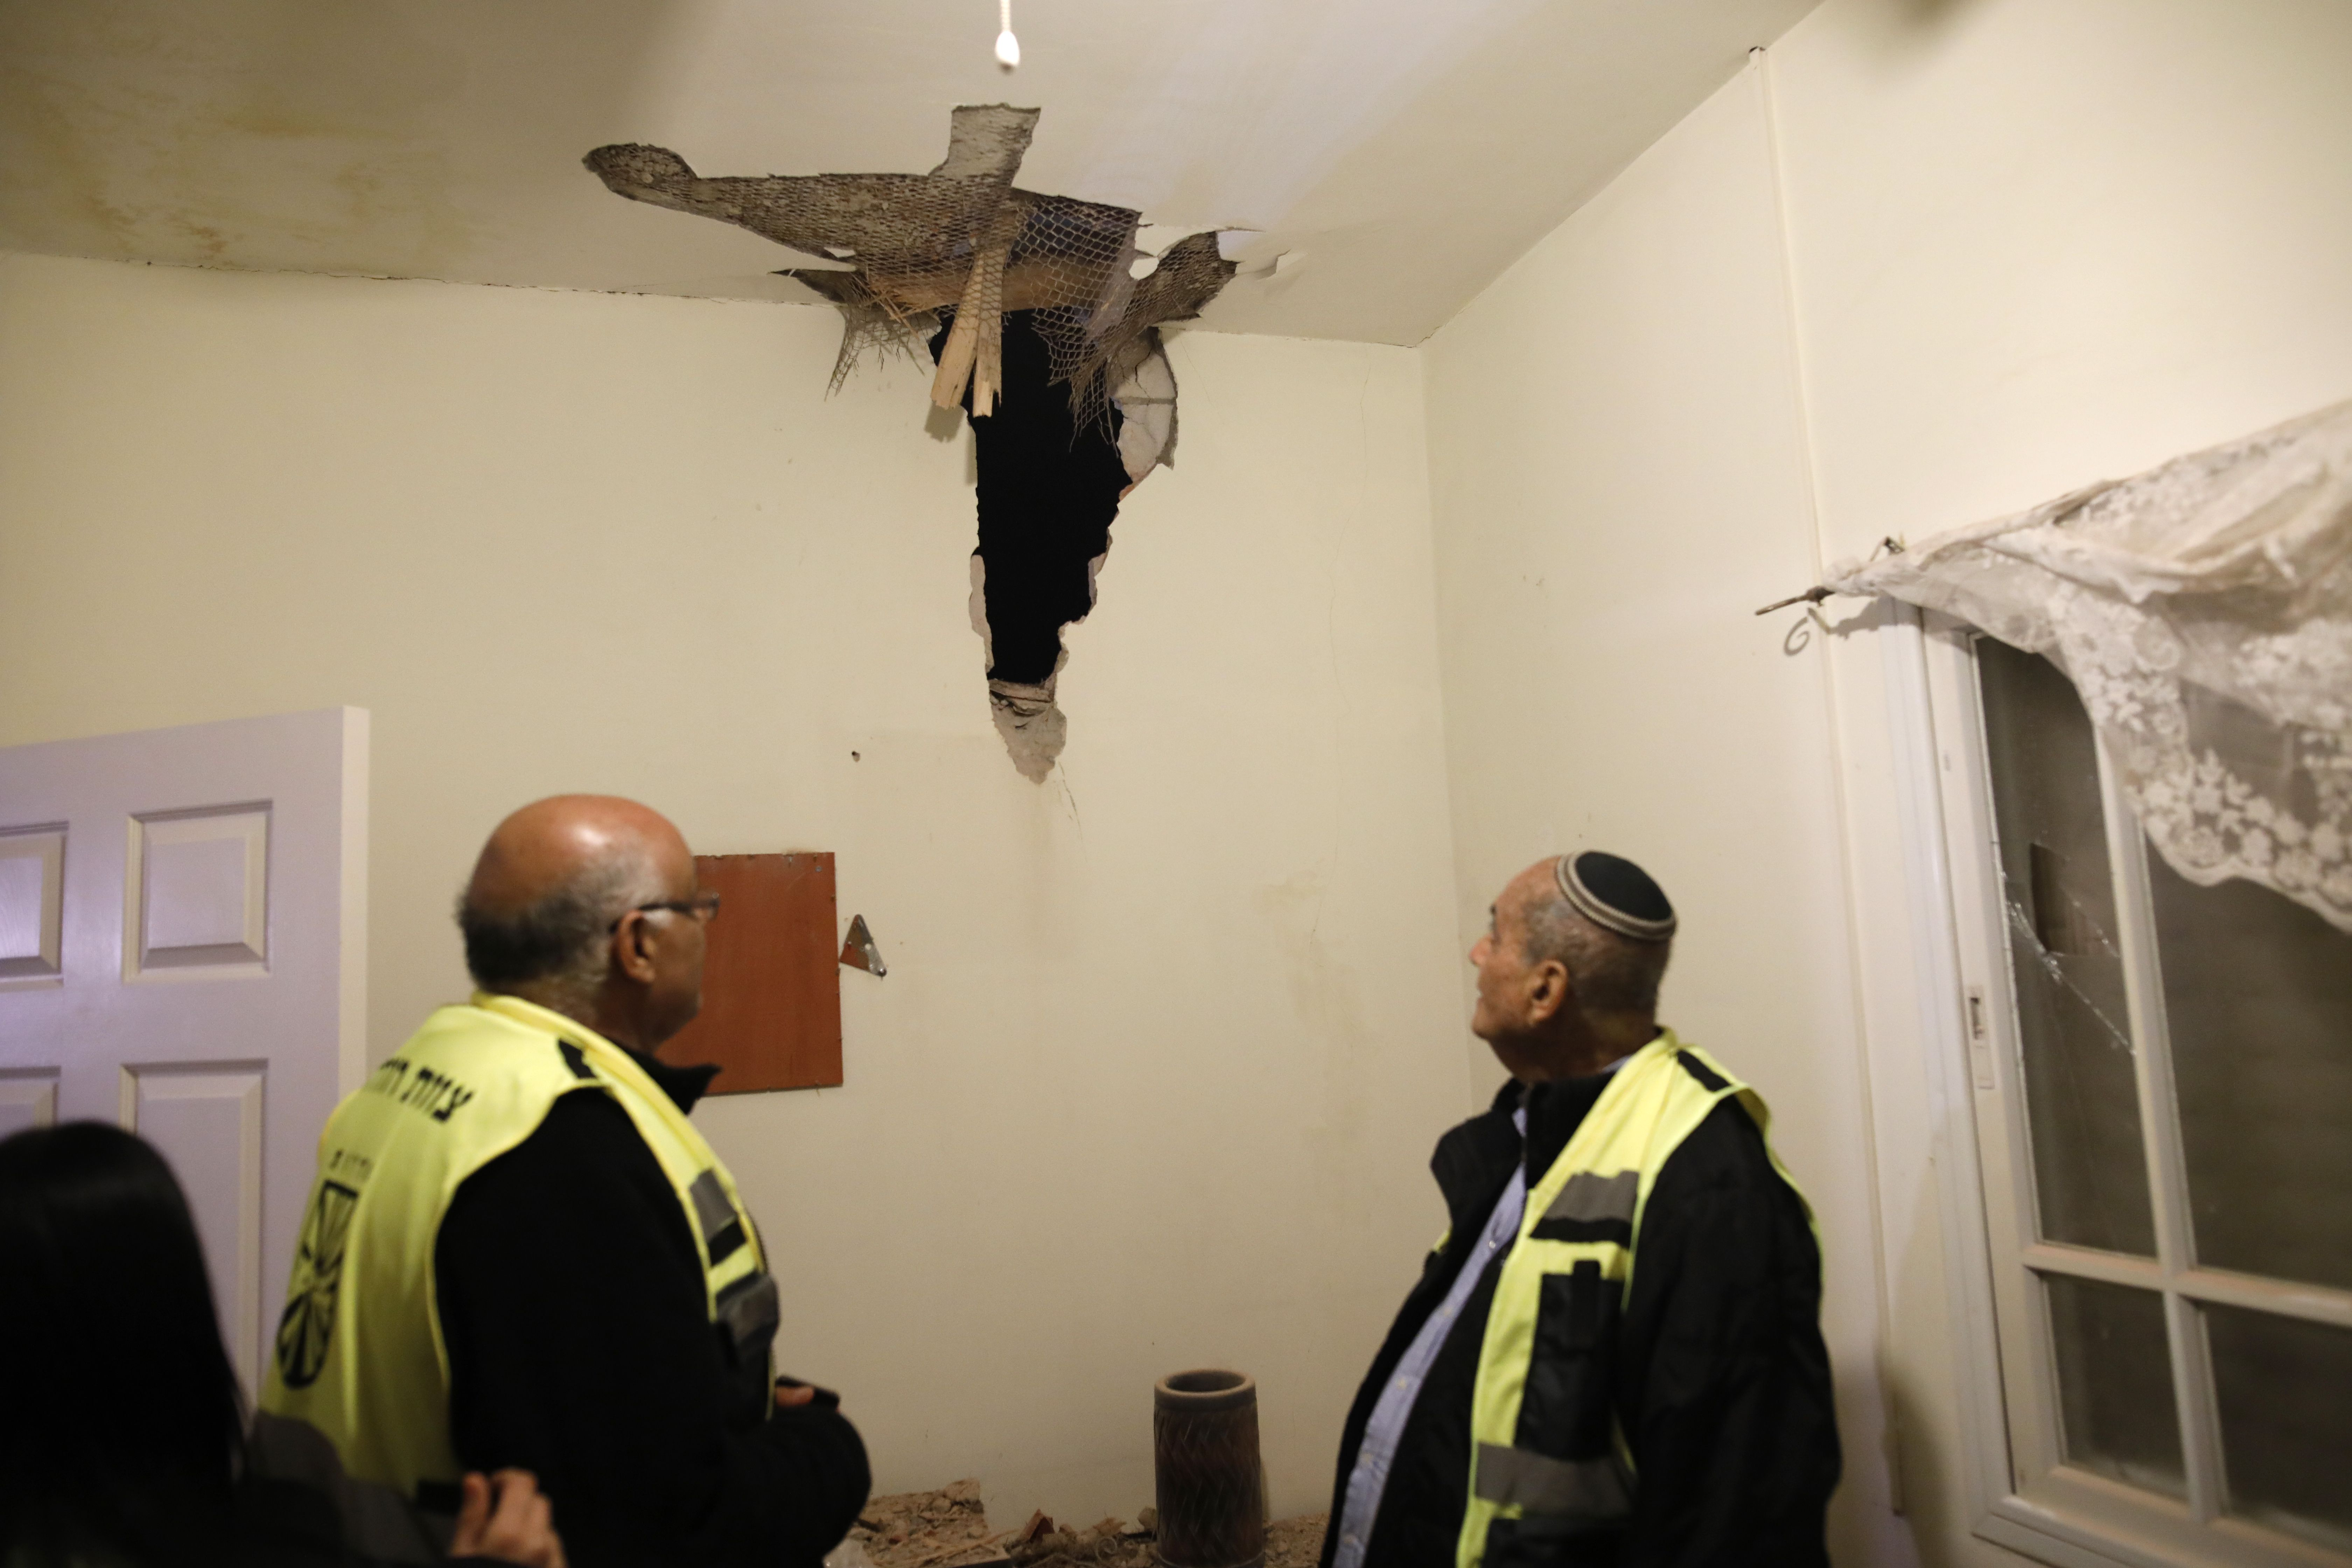 Volunteer rescuers stare at the damage in the ceiling of a house in the southern Israeli town of Sderot, caused by a rocket fired from the Gaza Strip on March 25, 2019. (Photo by Ahmad GHARABLI / AFP)